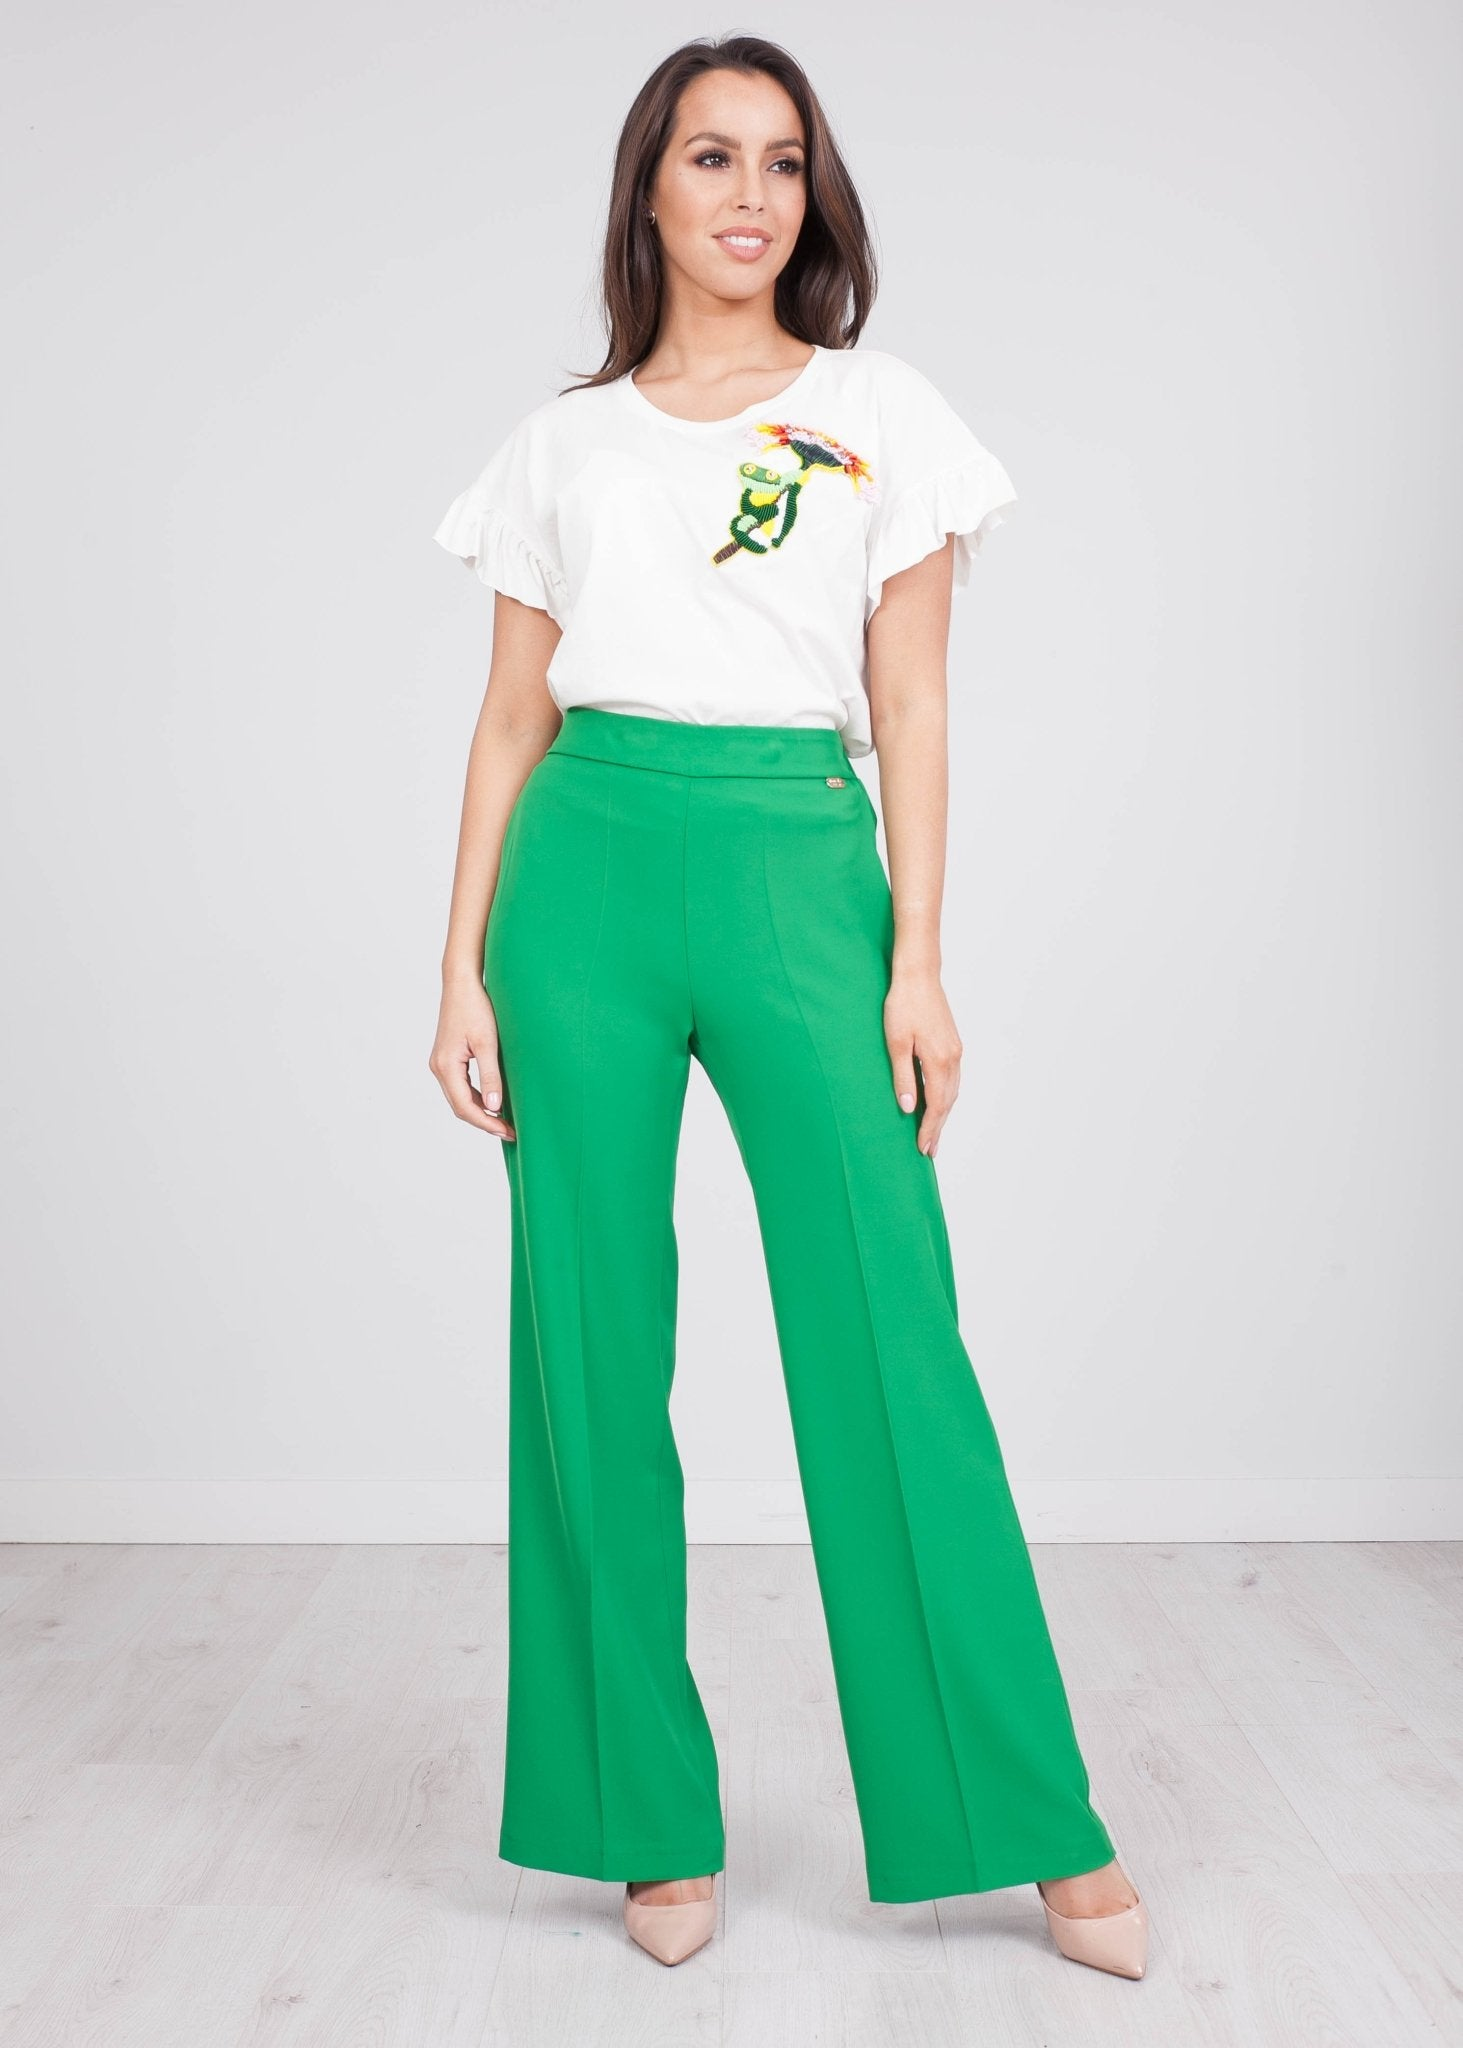 Rita Green Trousers - The Walk in Wardrobe